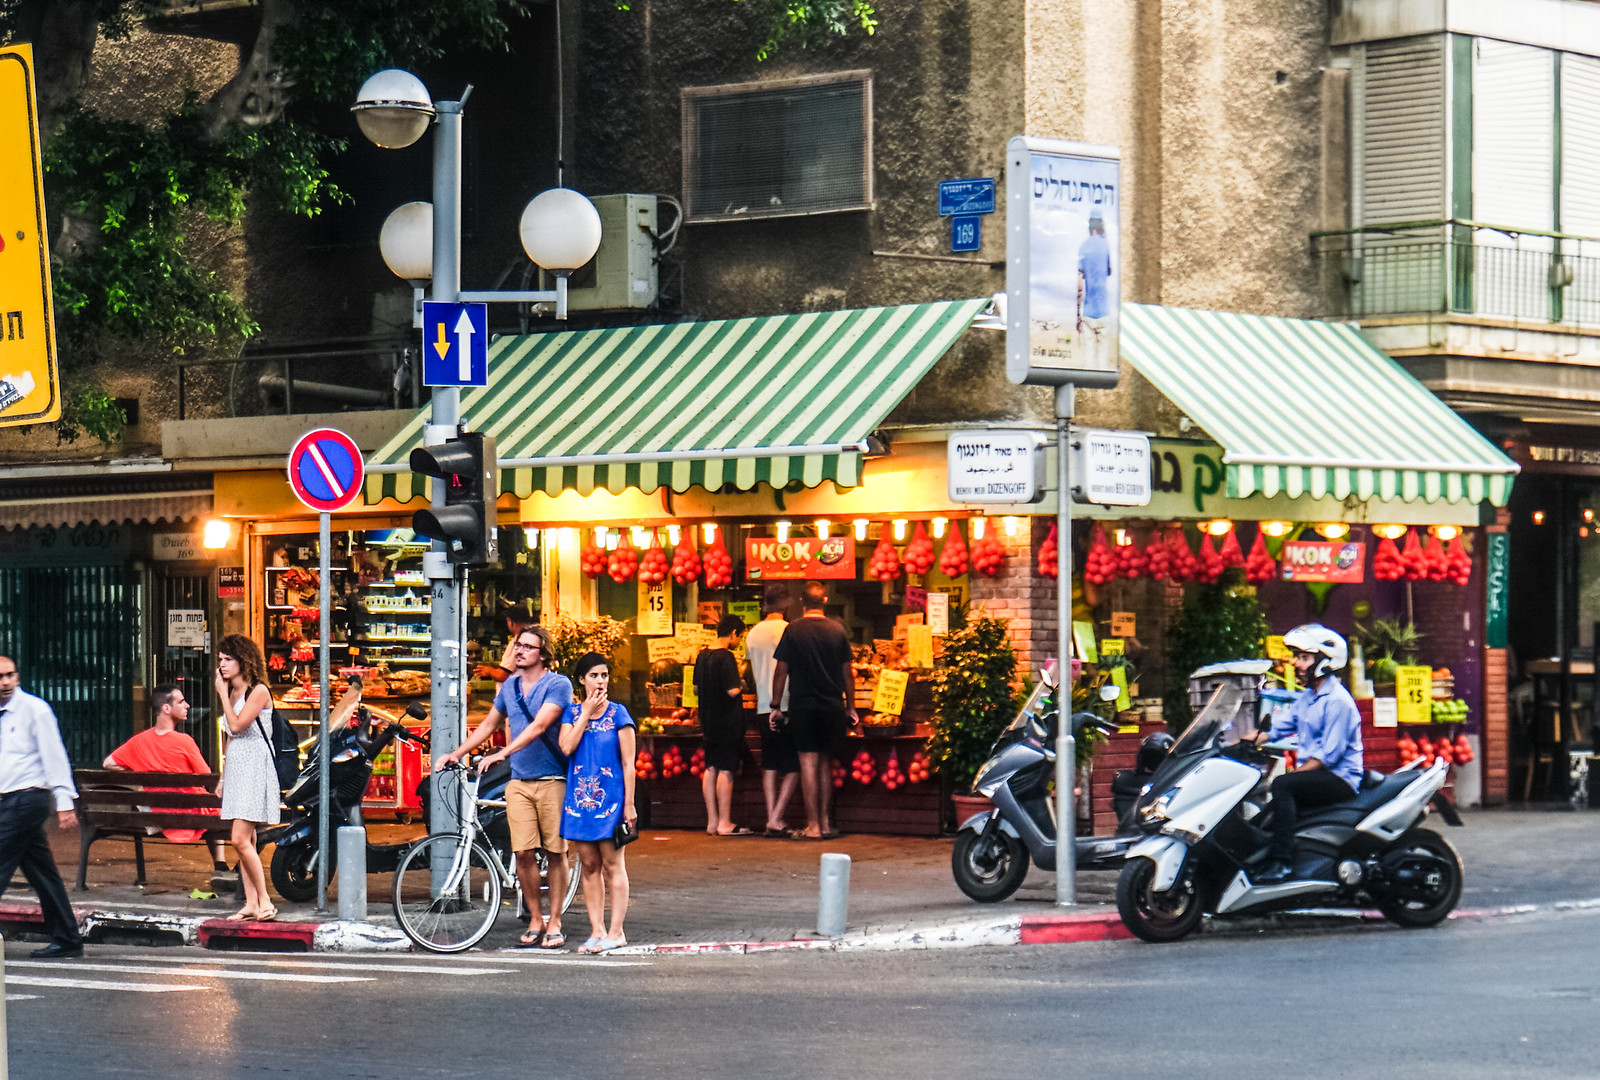 2016.07.10 Tel Aviv People and Places 07017